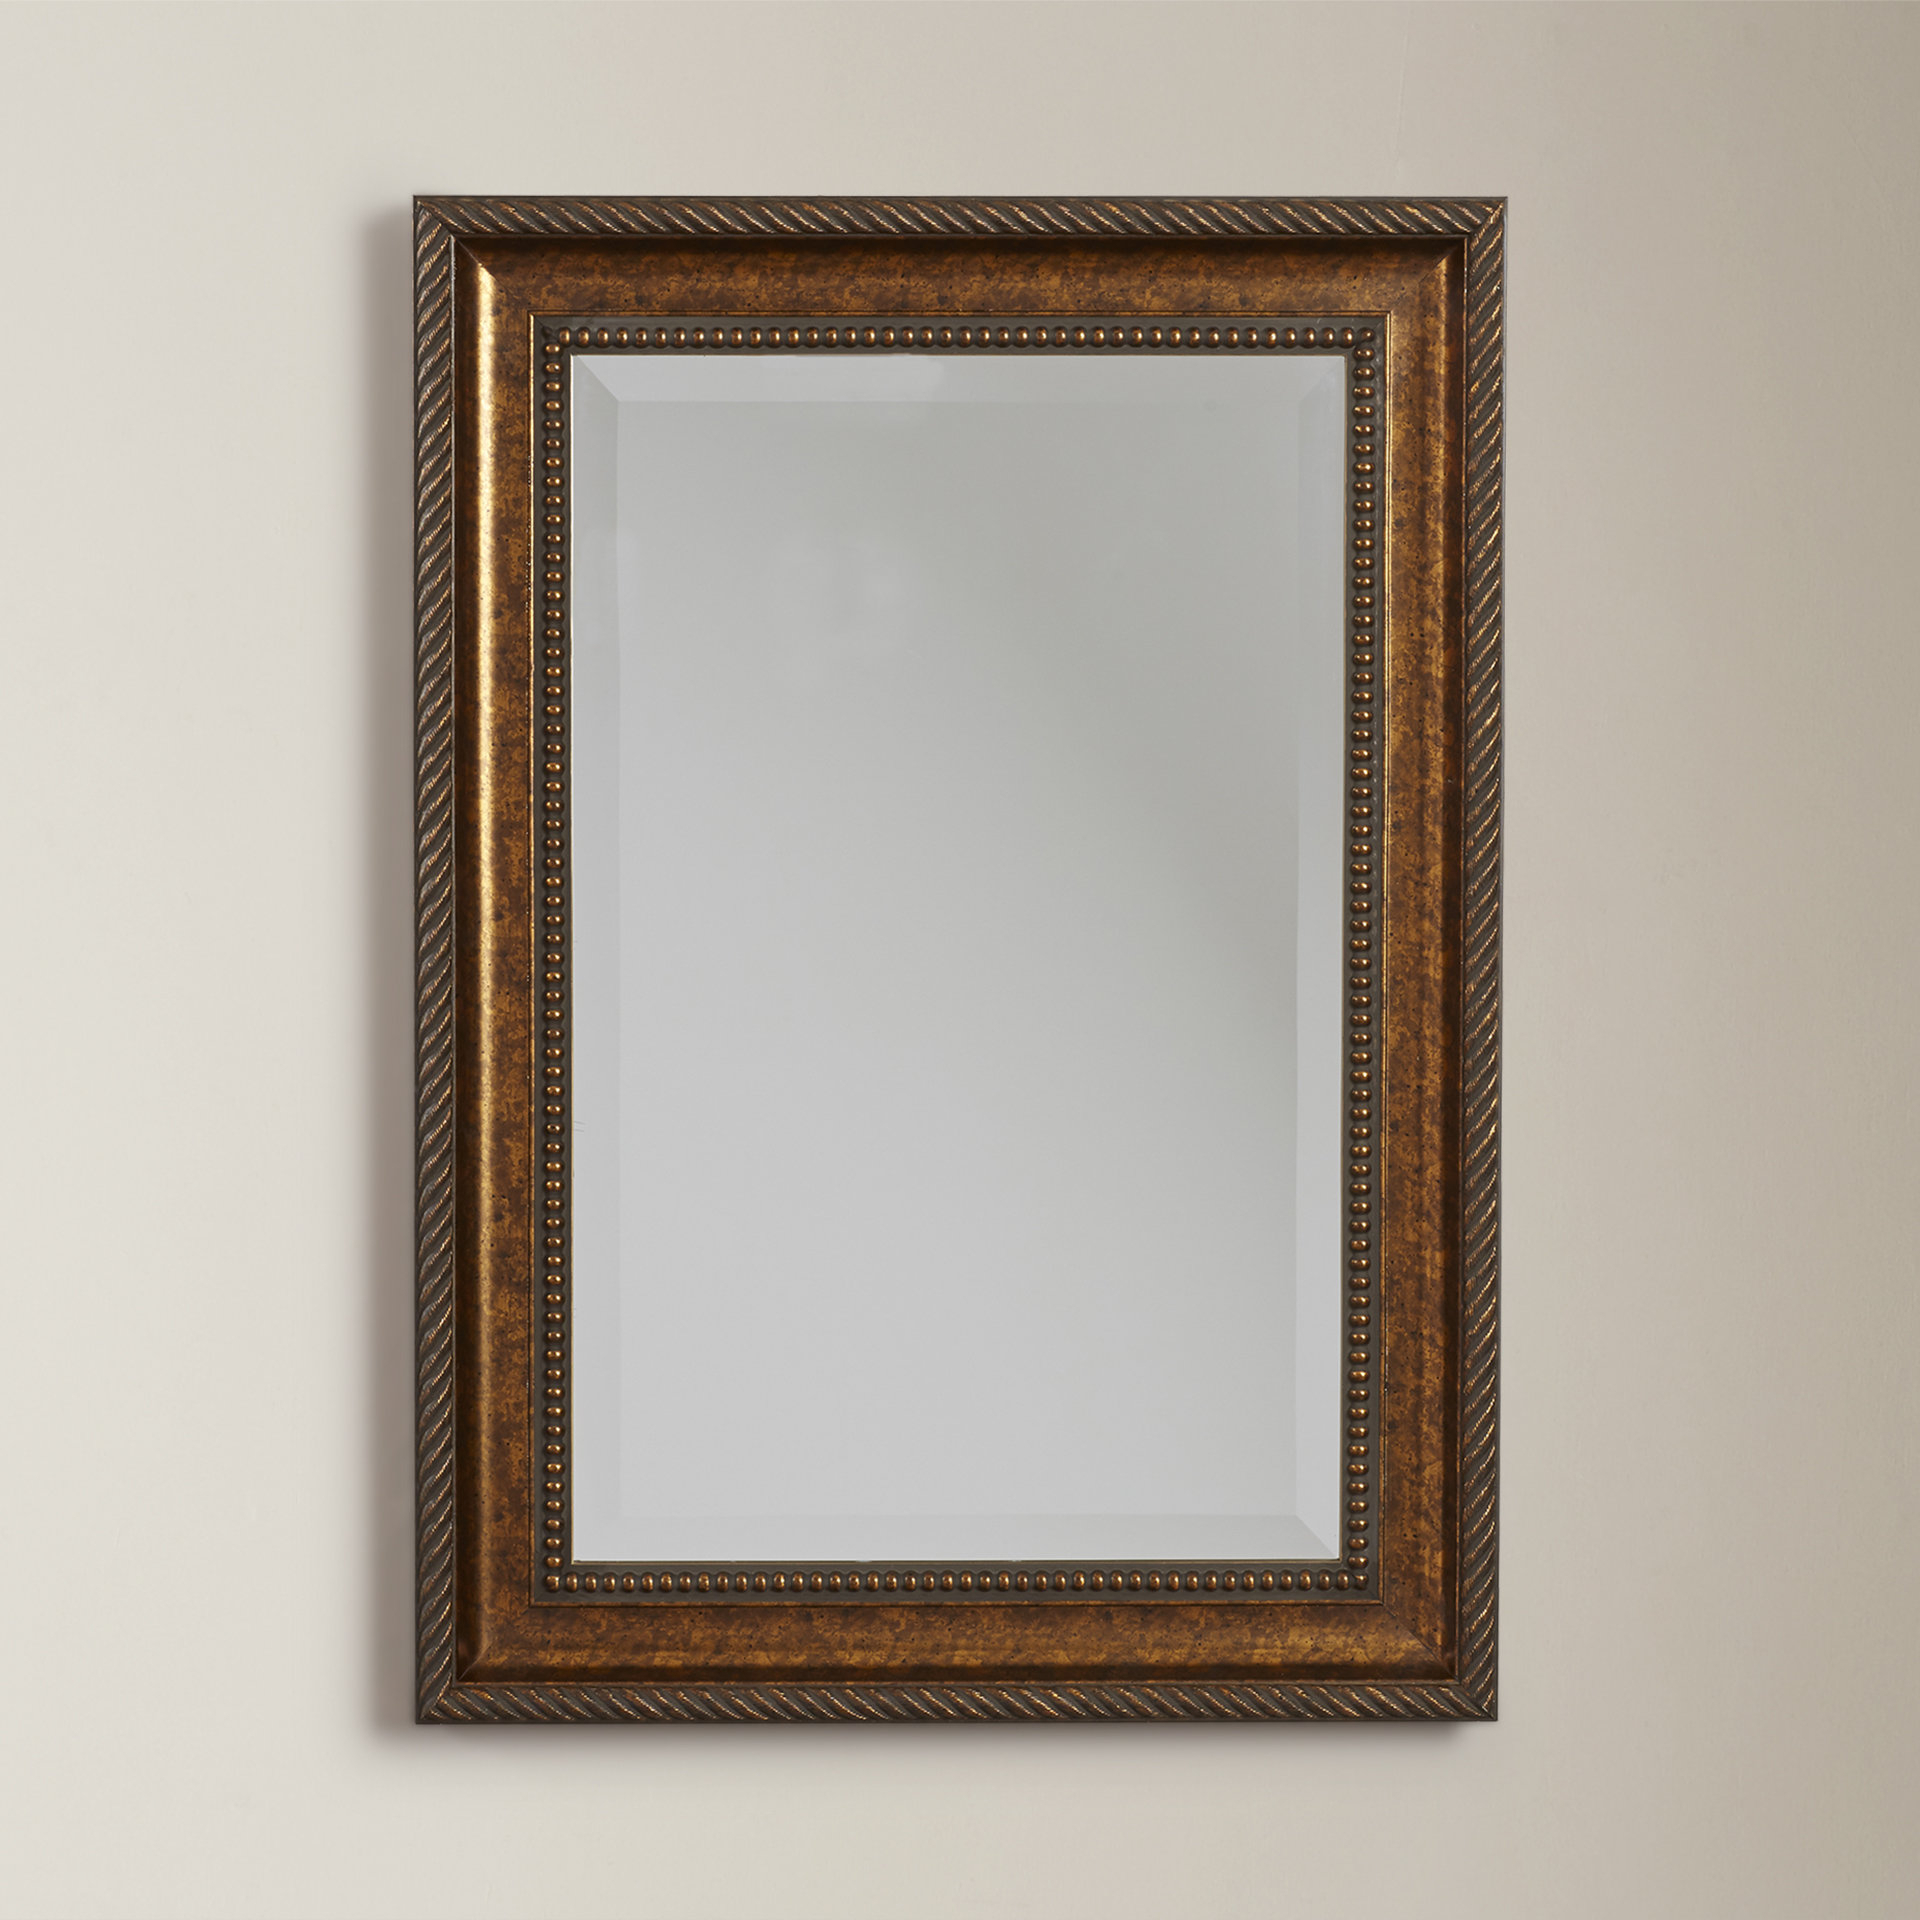 Grid Accent Mirrors Pertaining To Trendy Beveled Accent Mirror (Gallery 18 of 20)